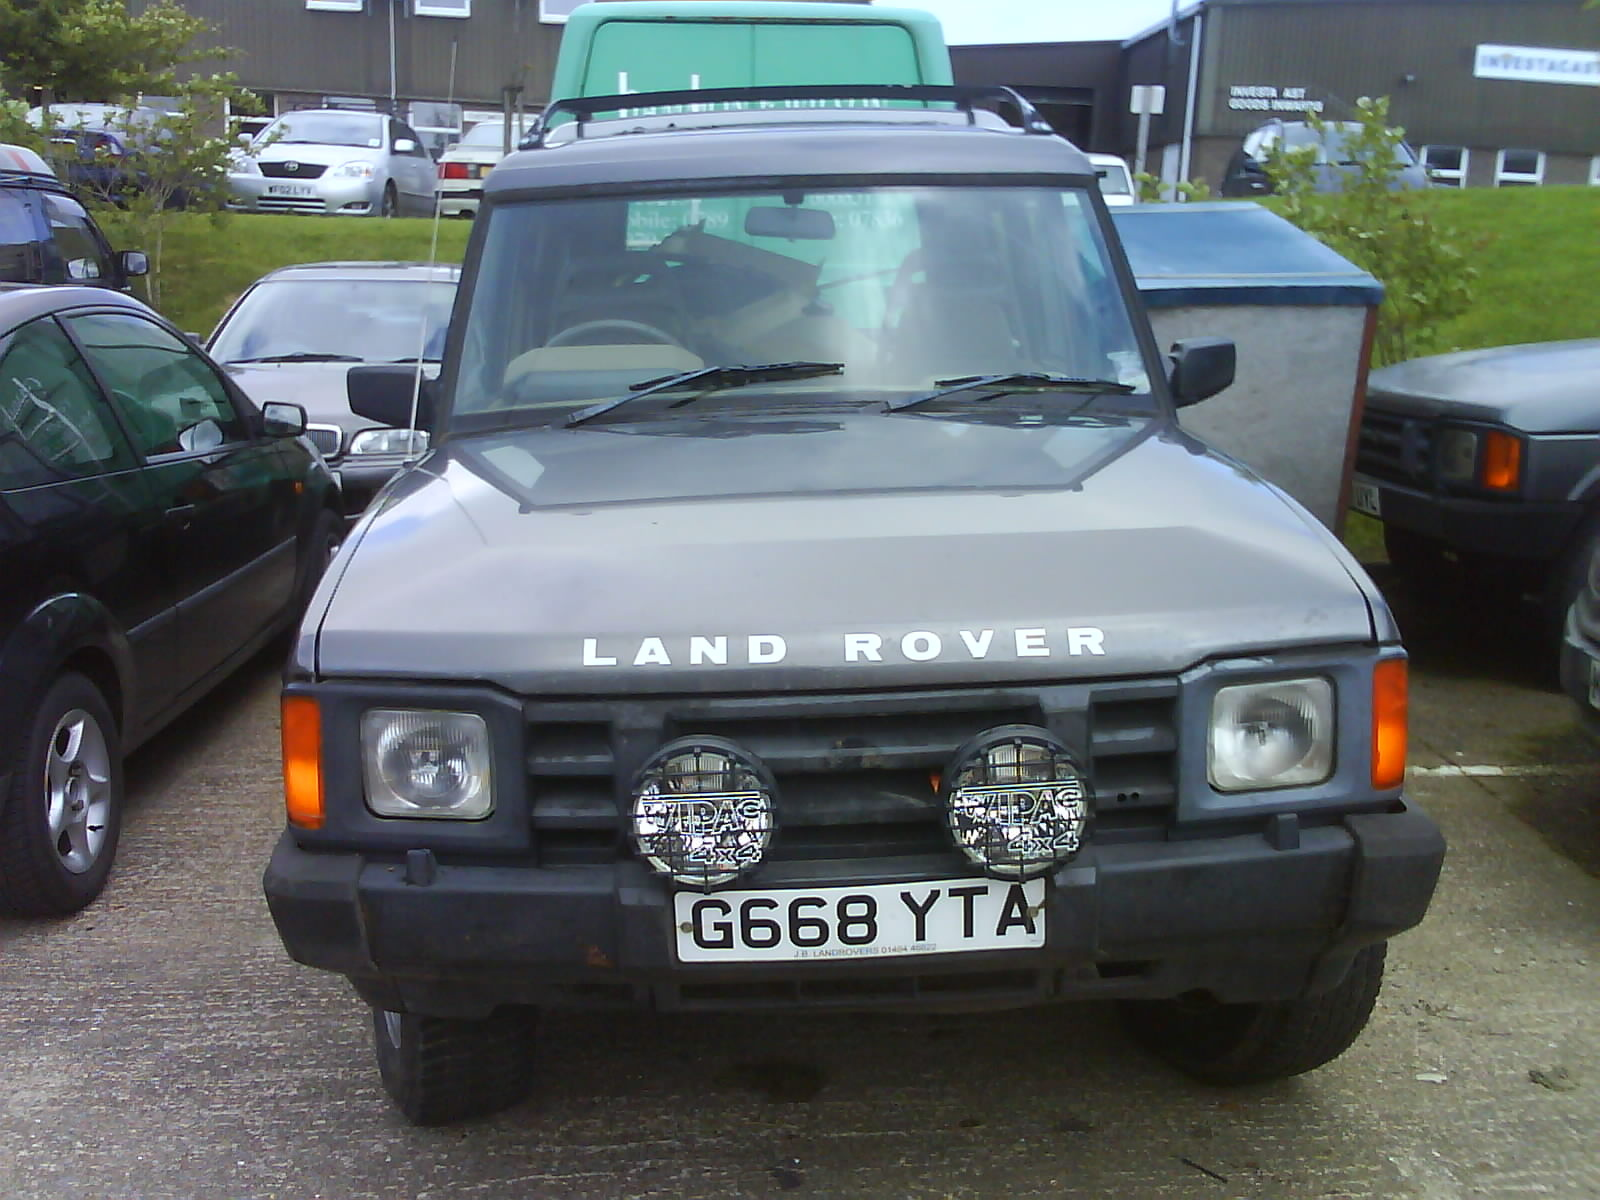 1994 Land Rover Range Rover User Reviews CarGurus